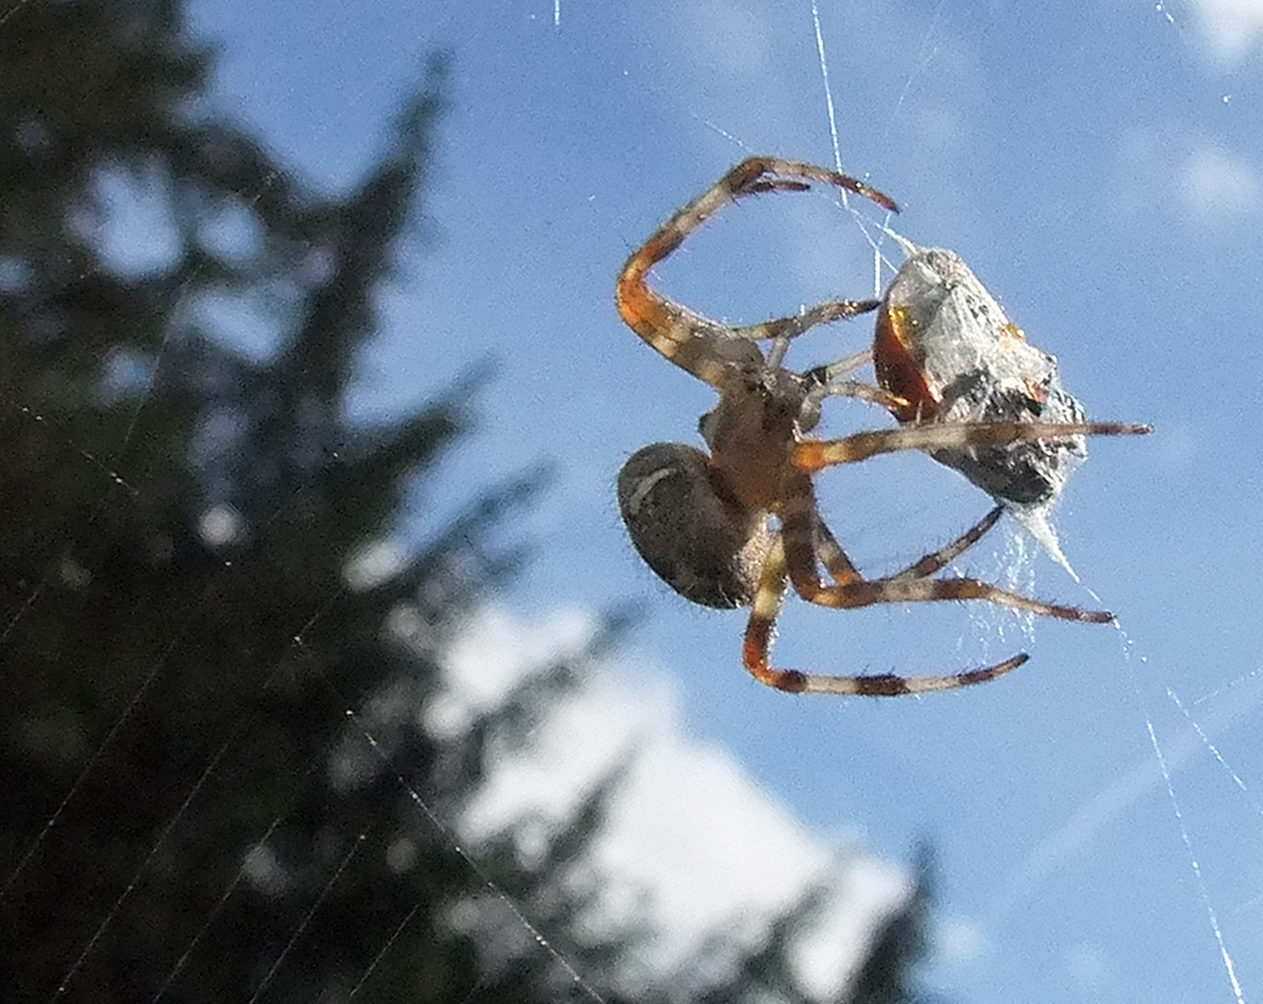 Why we can t spin silken yarn as strong as a spider can for What do we use silk for